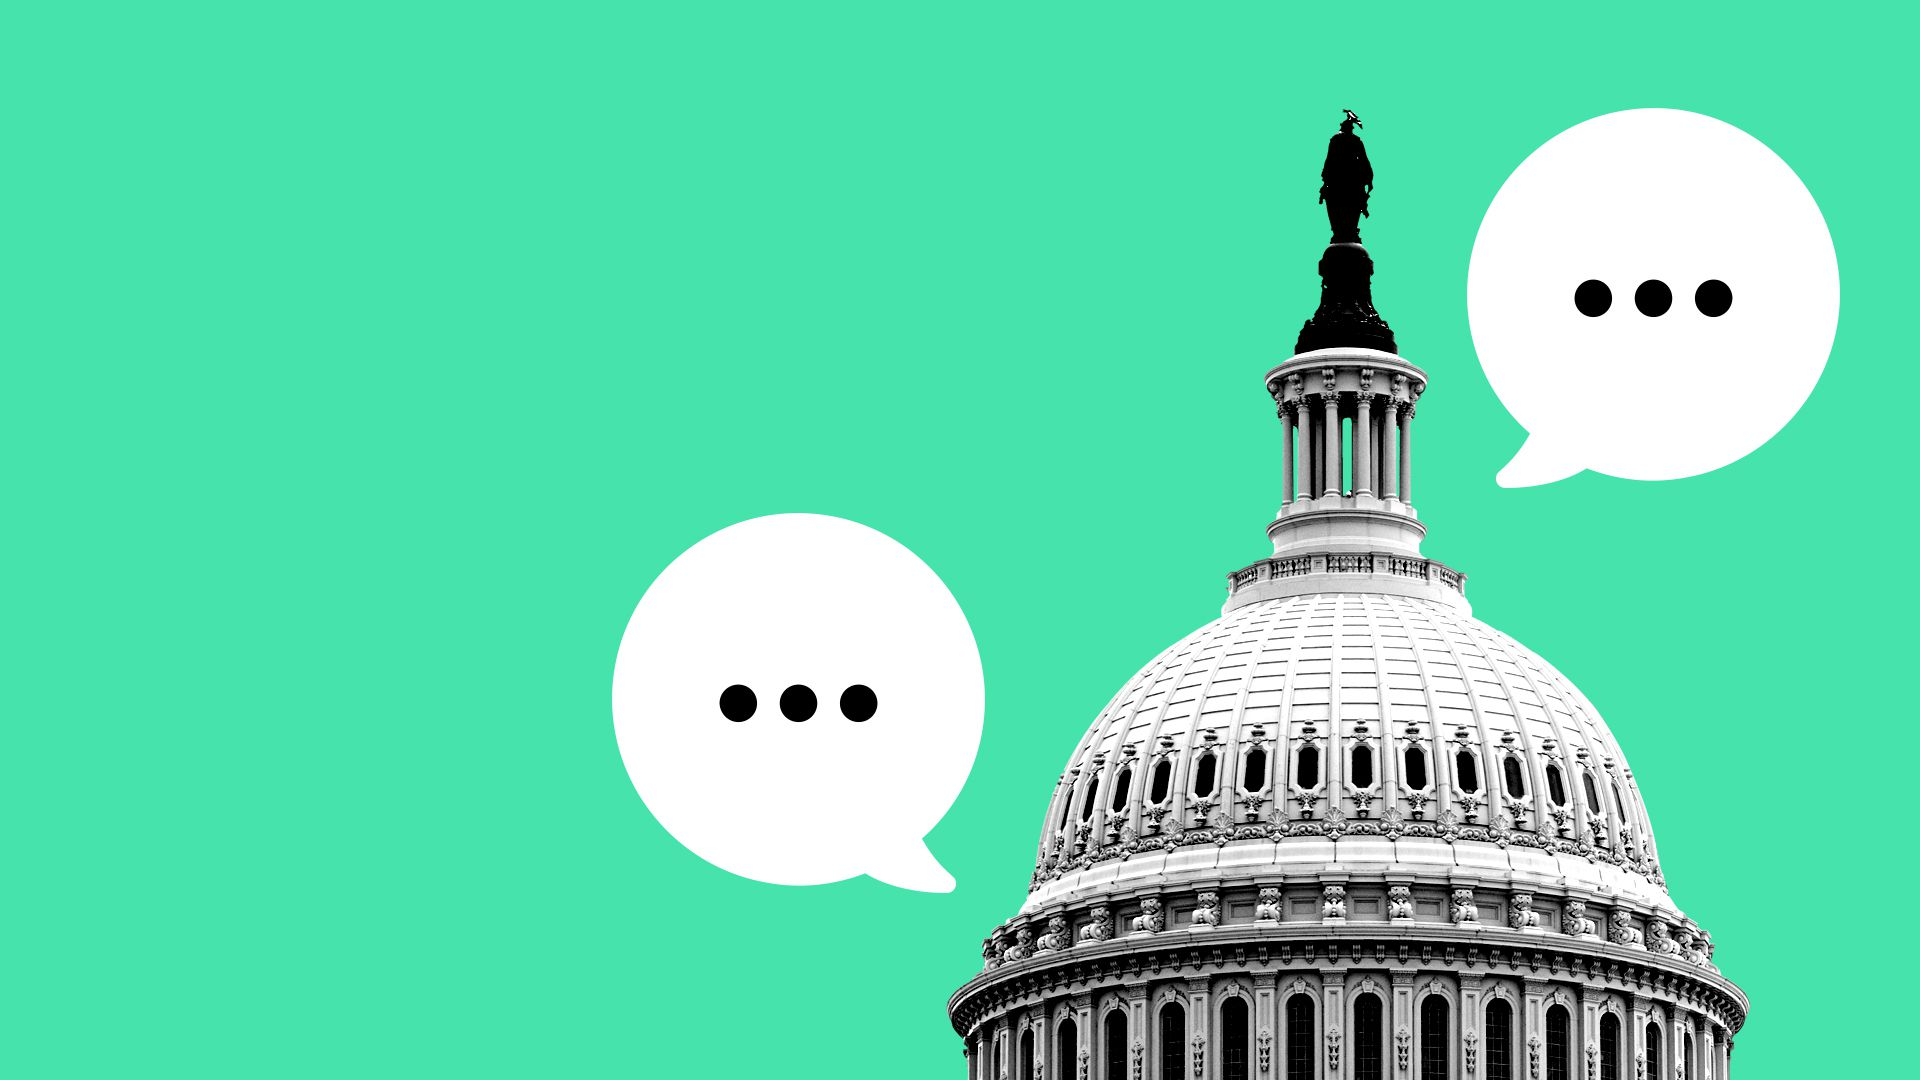 Illustration of congress with empty speech bubbles